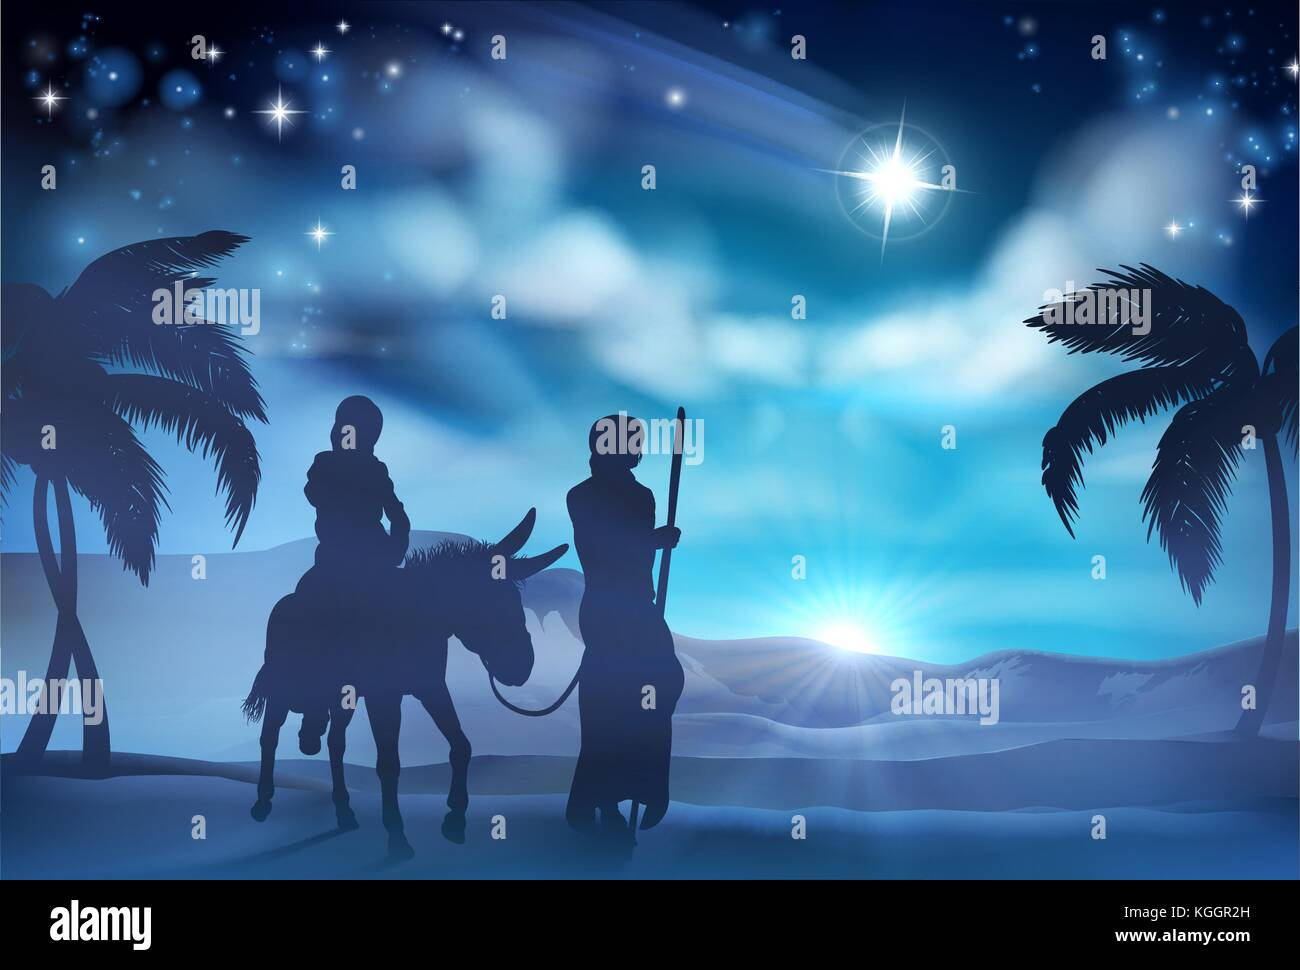 Mary and Joseph Nativity Christmas Illustration Stock Vector